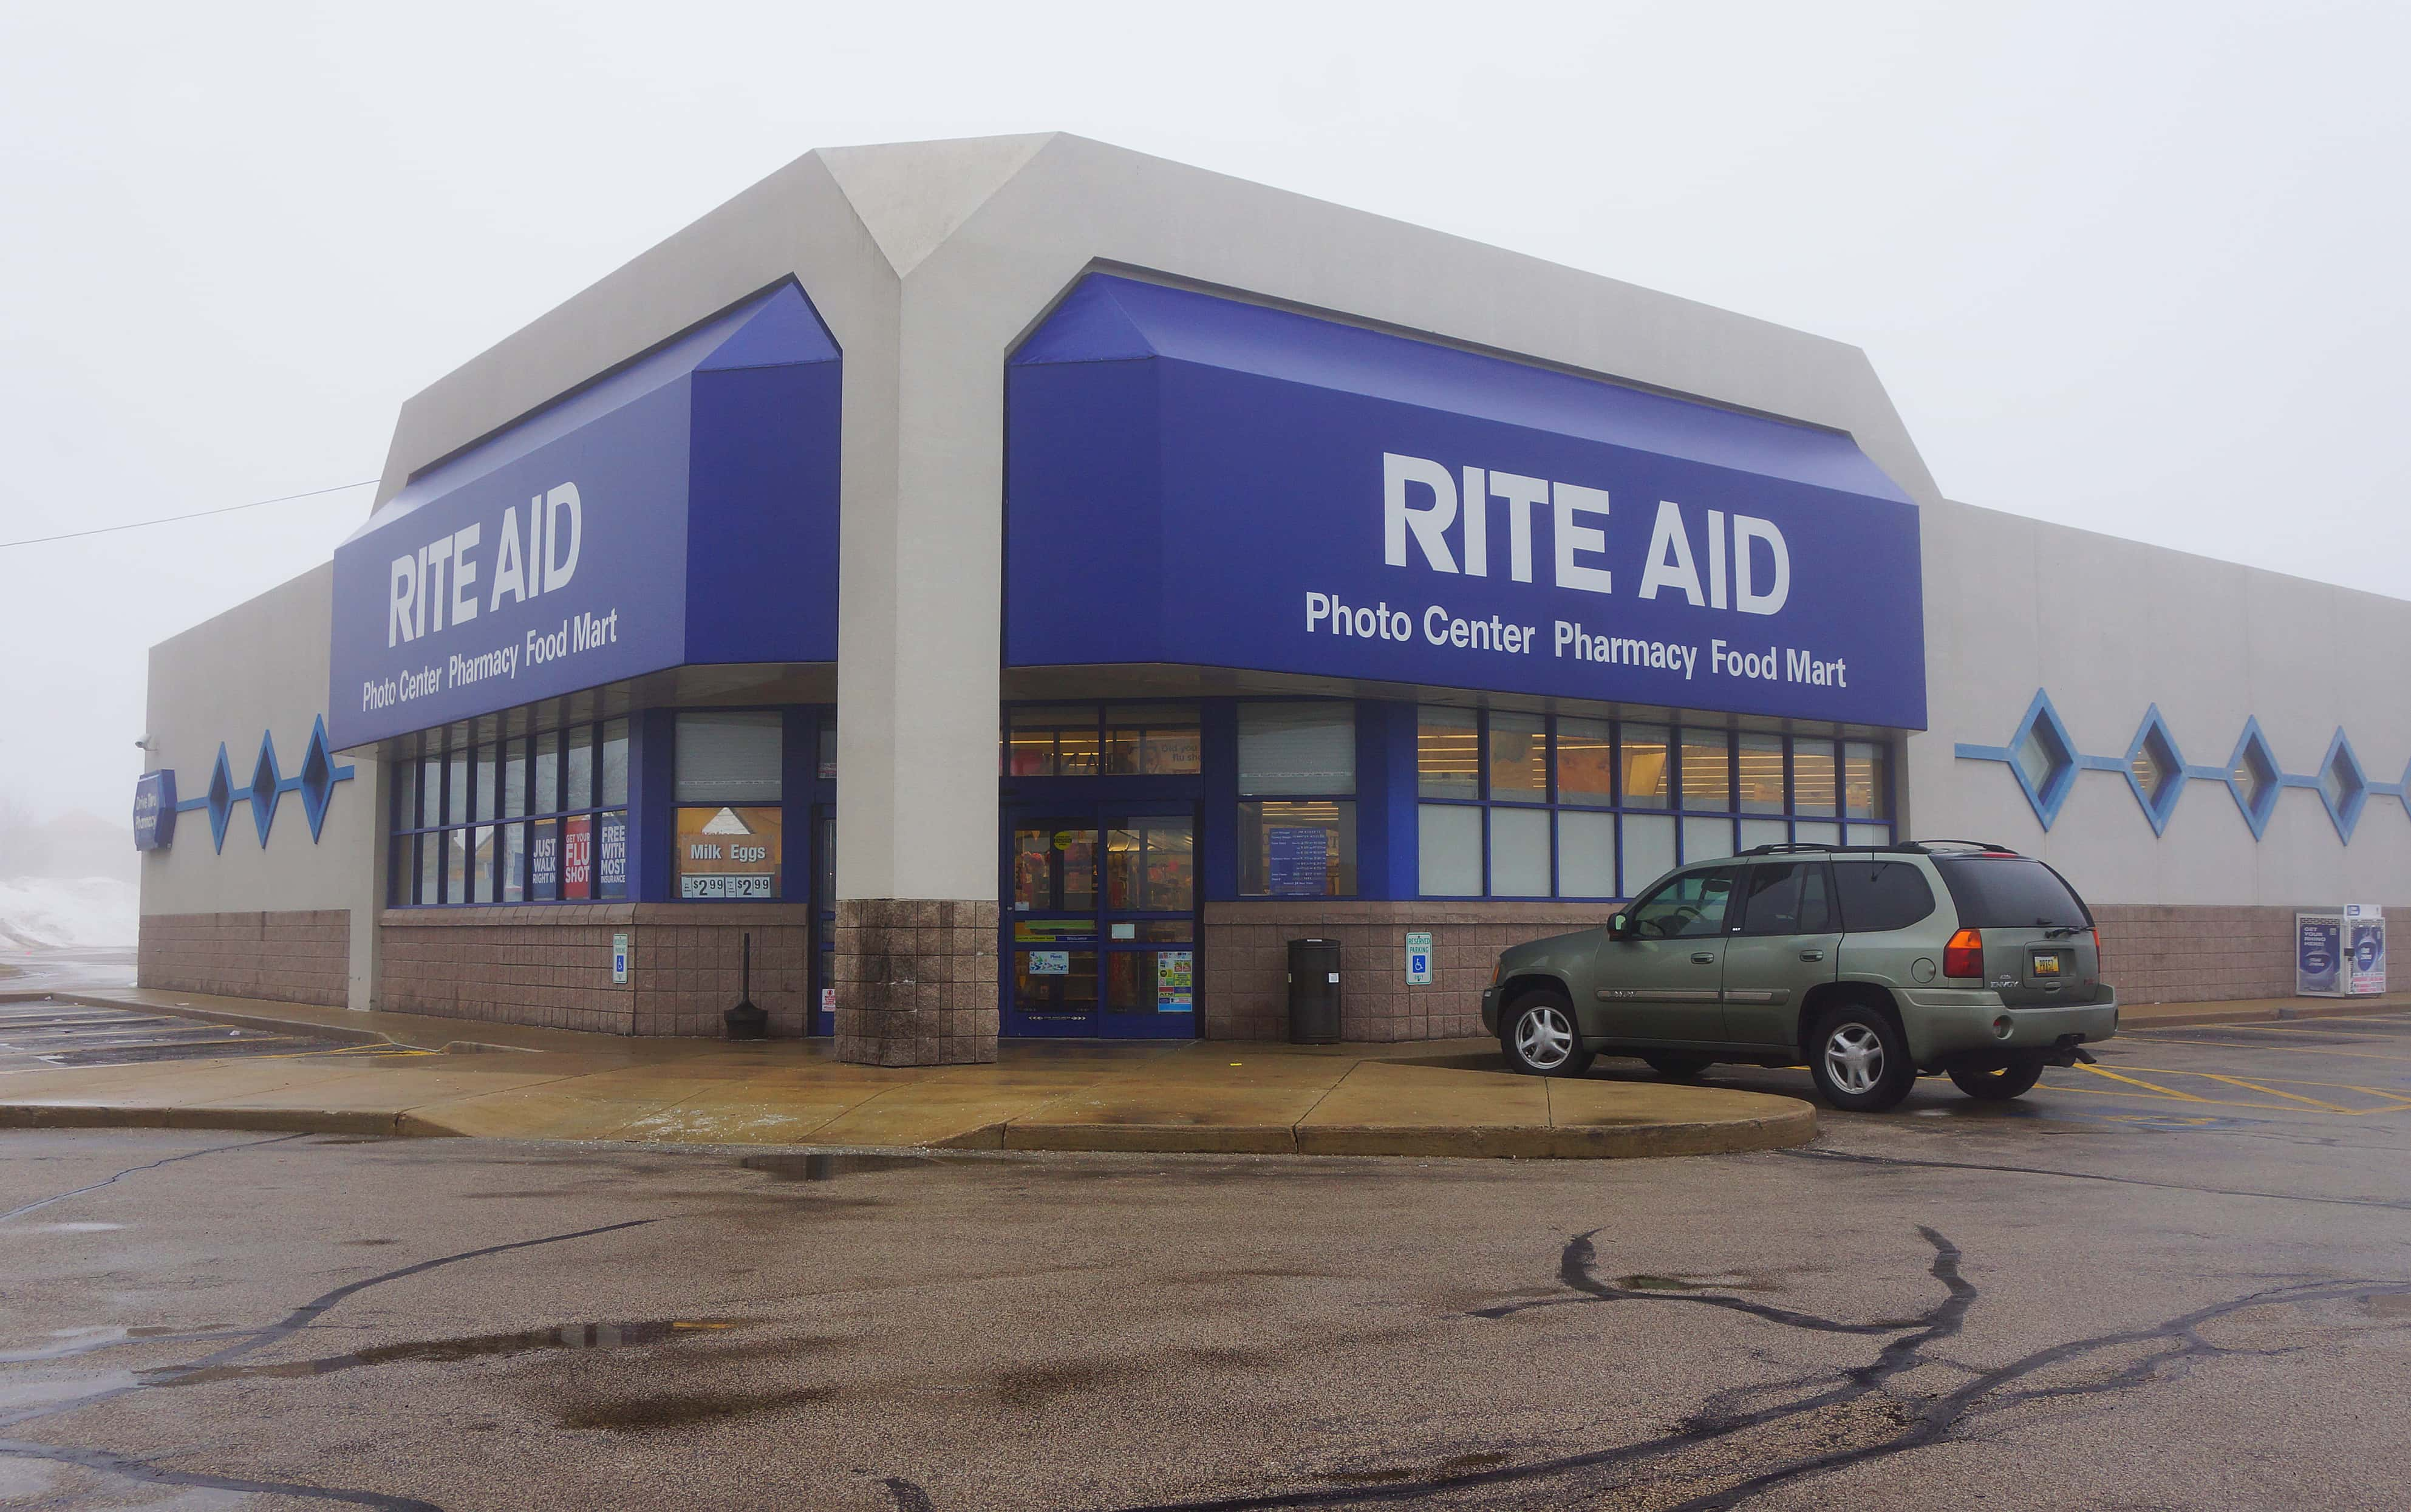 bec0f9d1cc After getting a more than one year reprieve, turns out the on again-off  again fate of the Rite Aid Pharmacy at the Fairplain Plaza is once again  off.